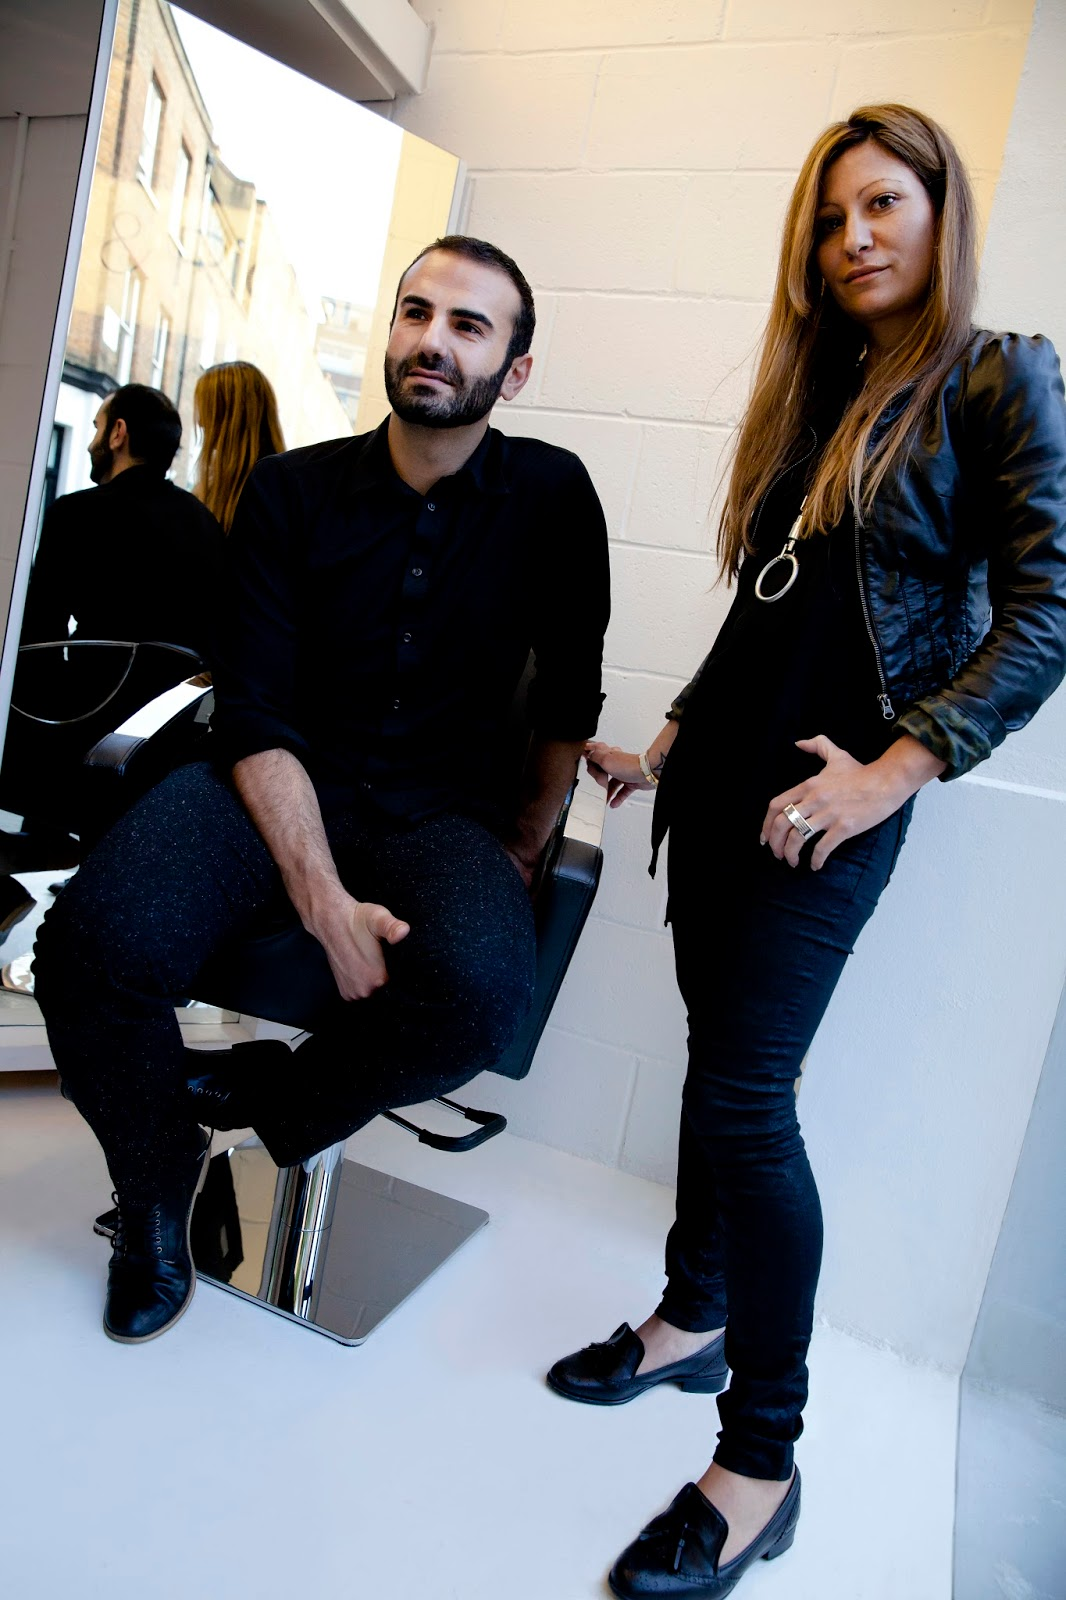 Stephen and Nadia at the salon